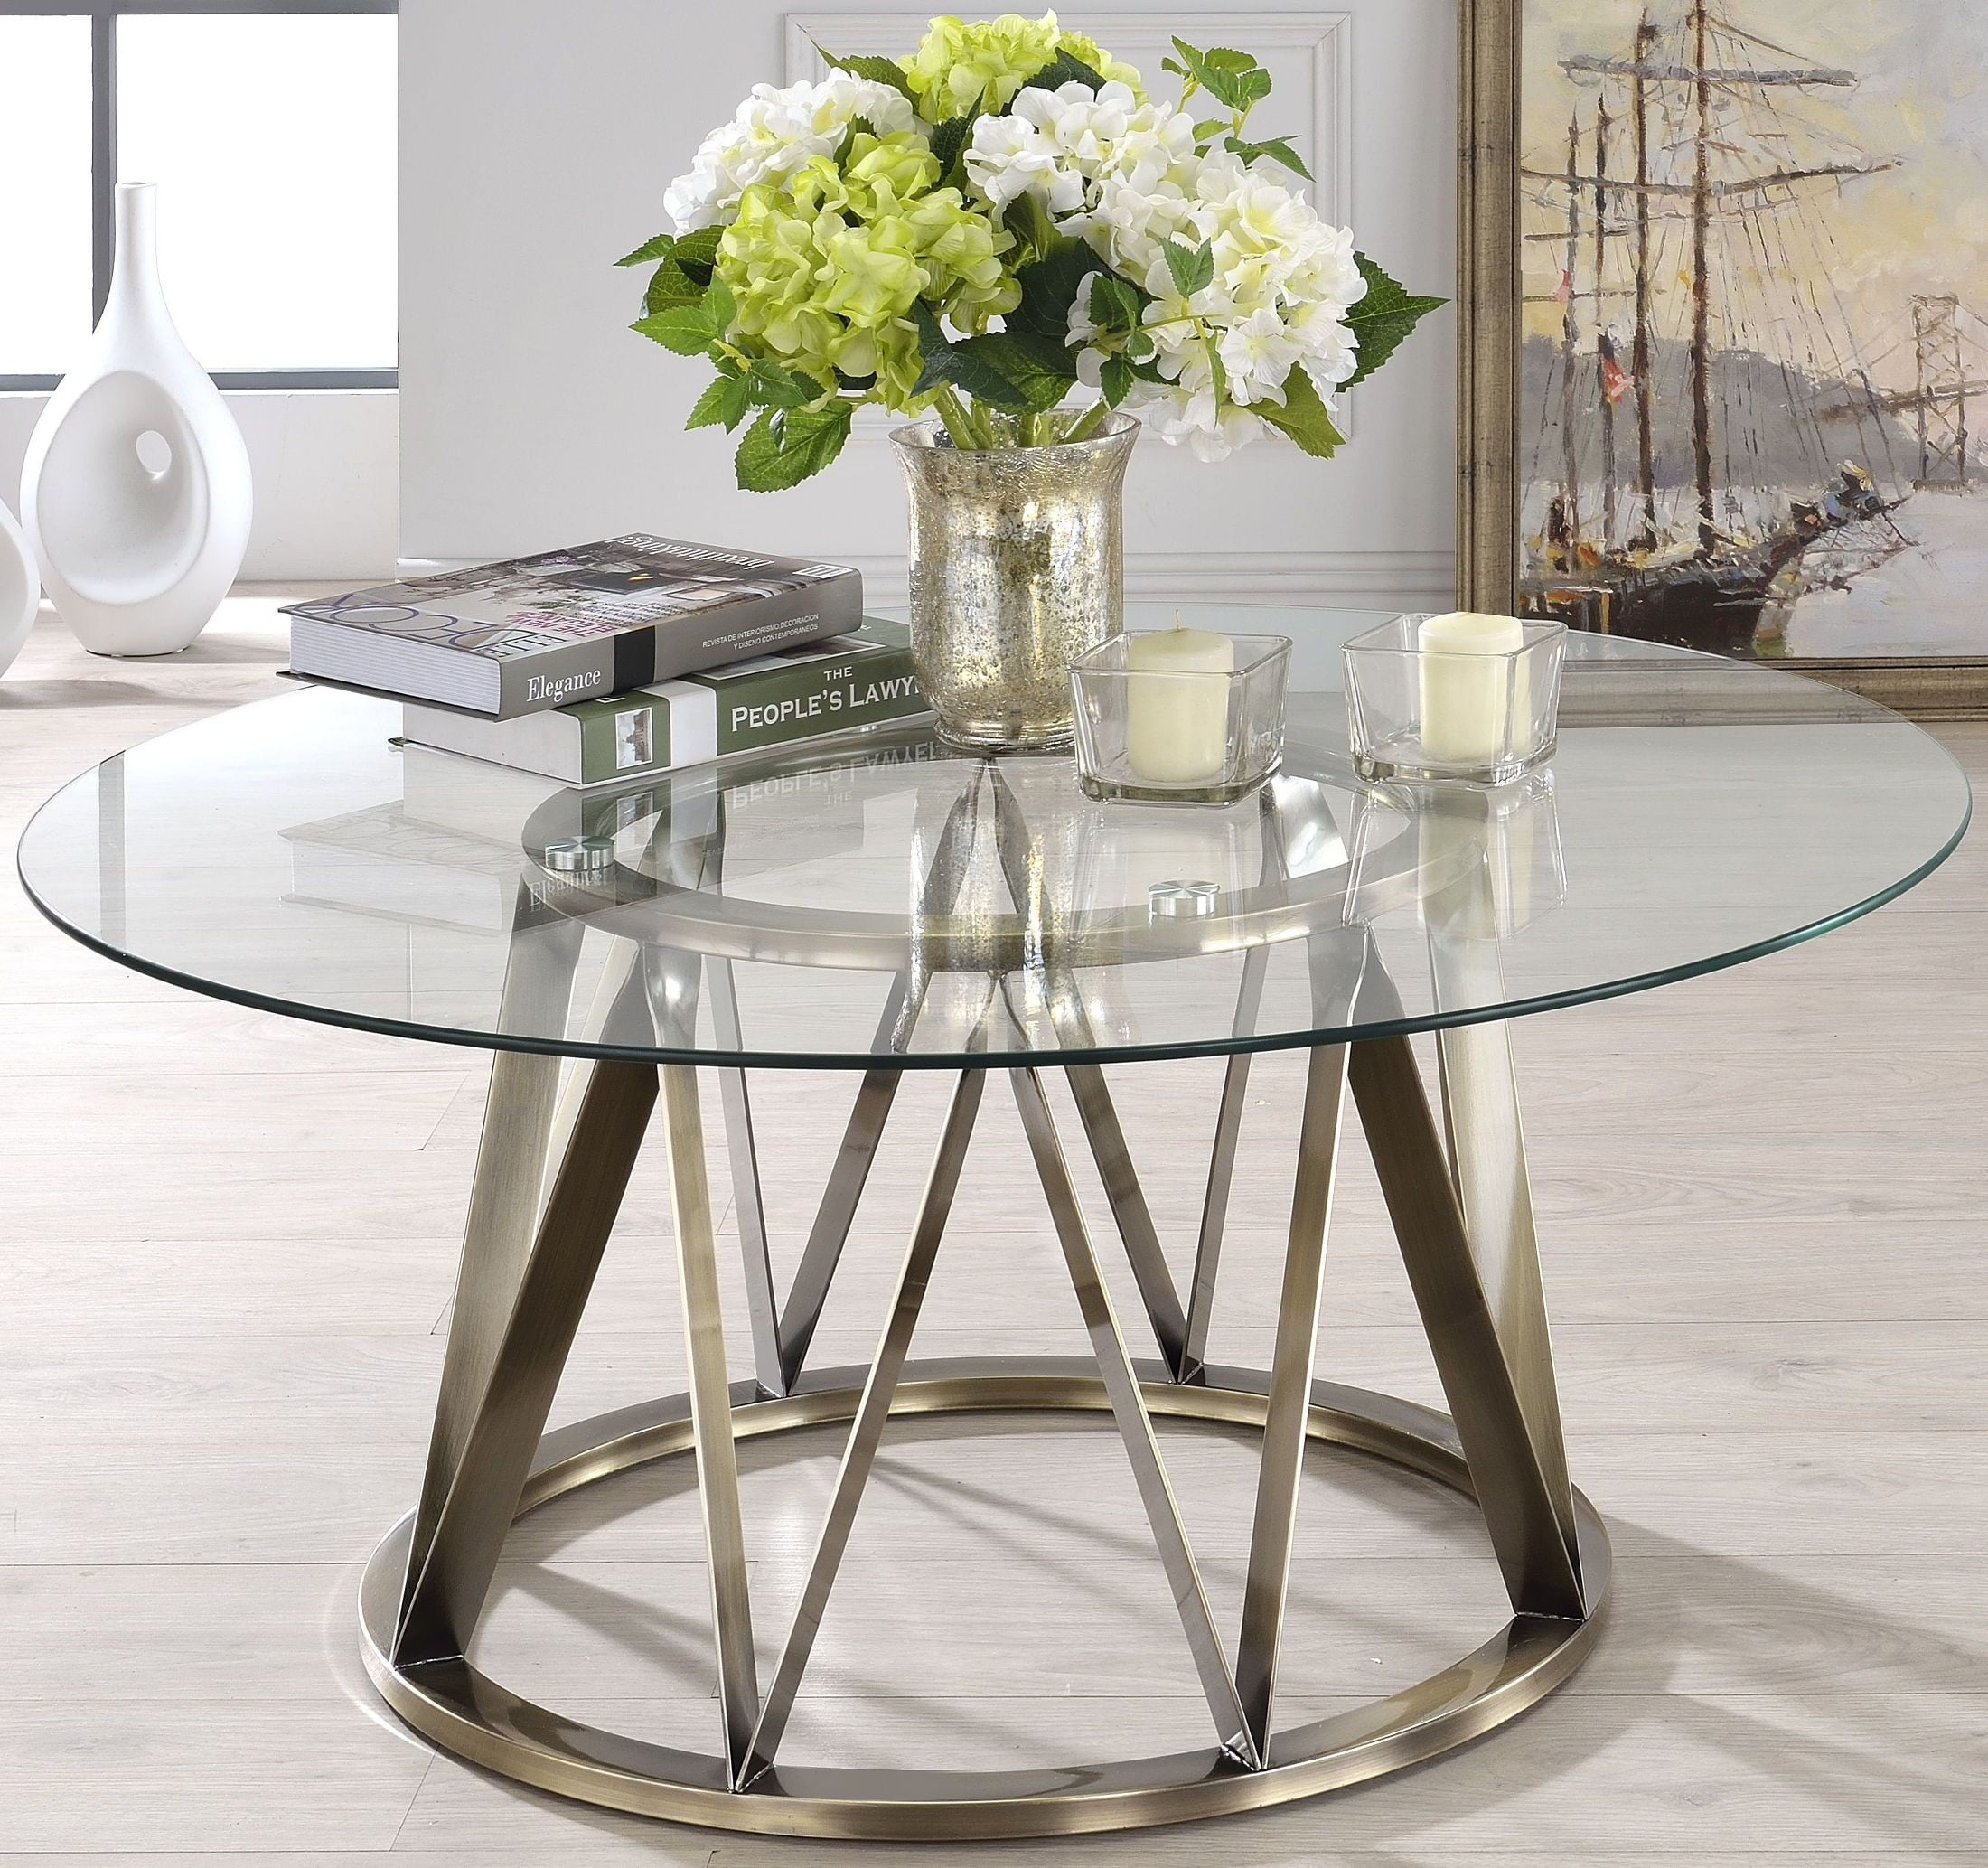 Vintage Glass Coffee Tables: Perjan Antique Brass And Clear Glass Coffee Table From